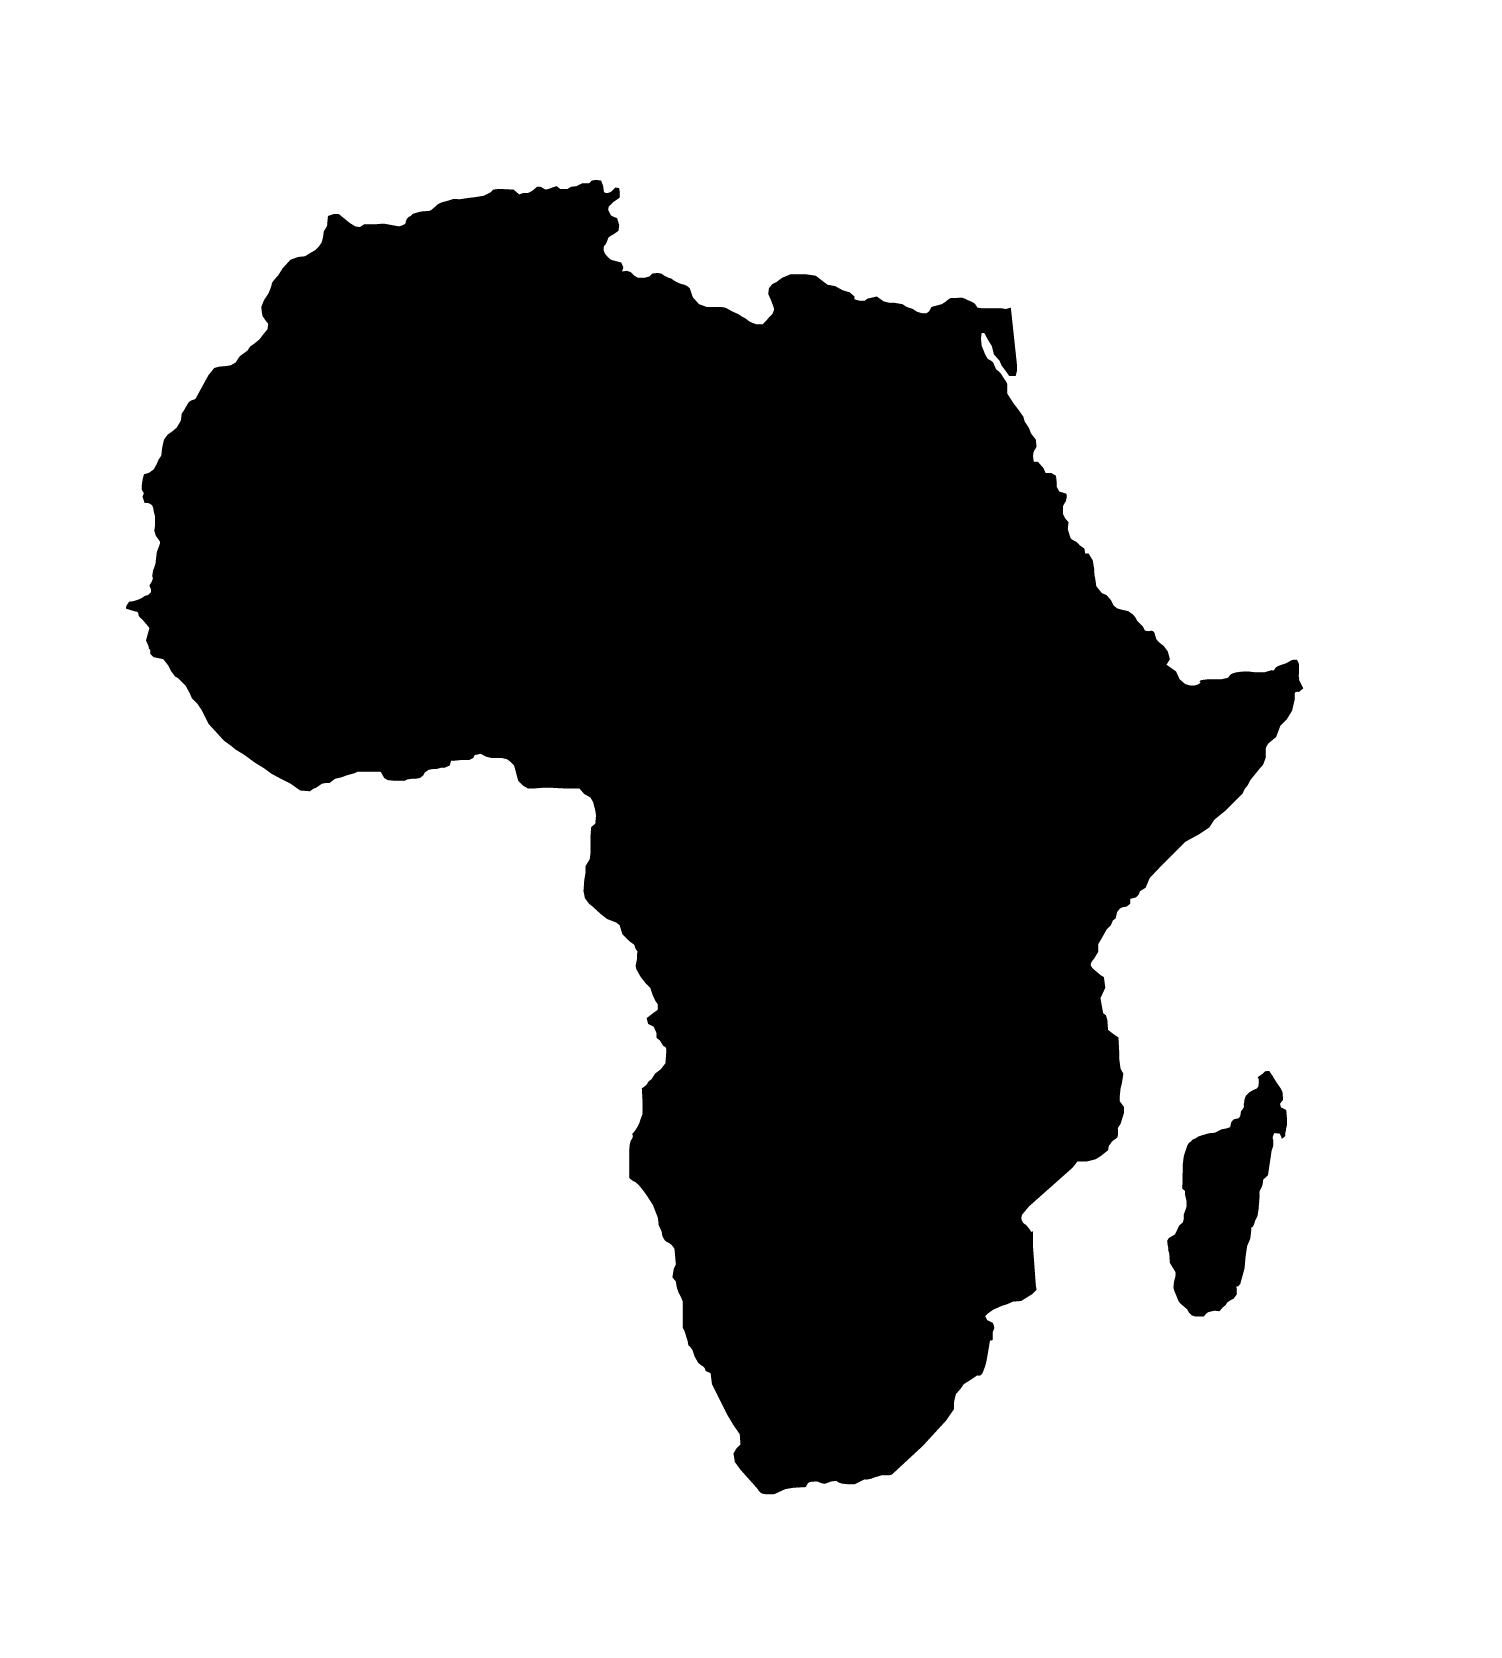 Africa Globe Clip Art Afro Png Download 1502 1658 Free Transparent Africa Png Download Clip Art Library